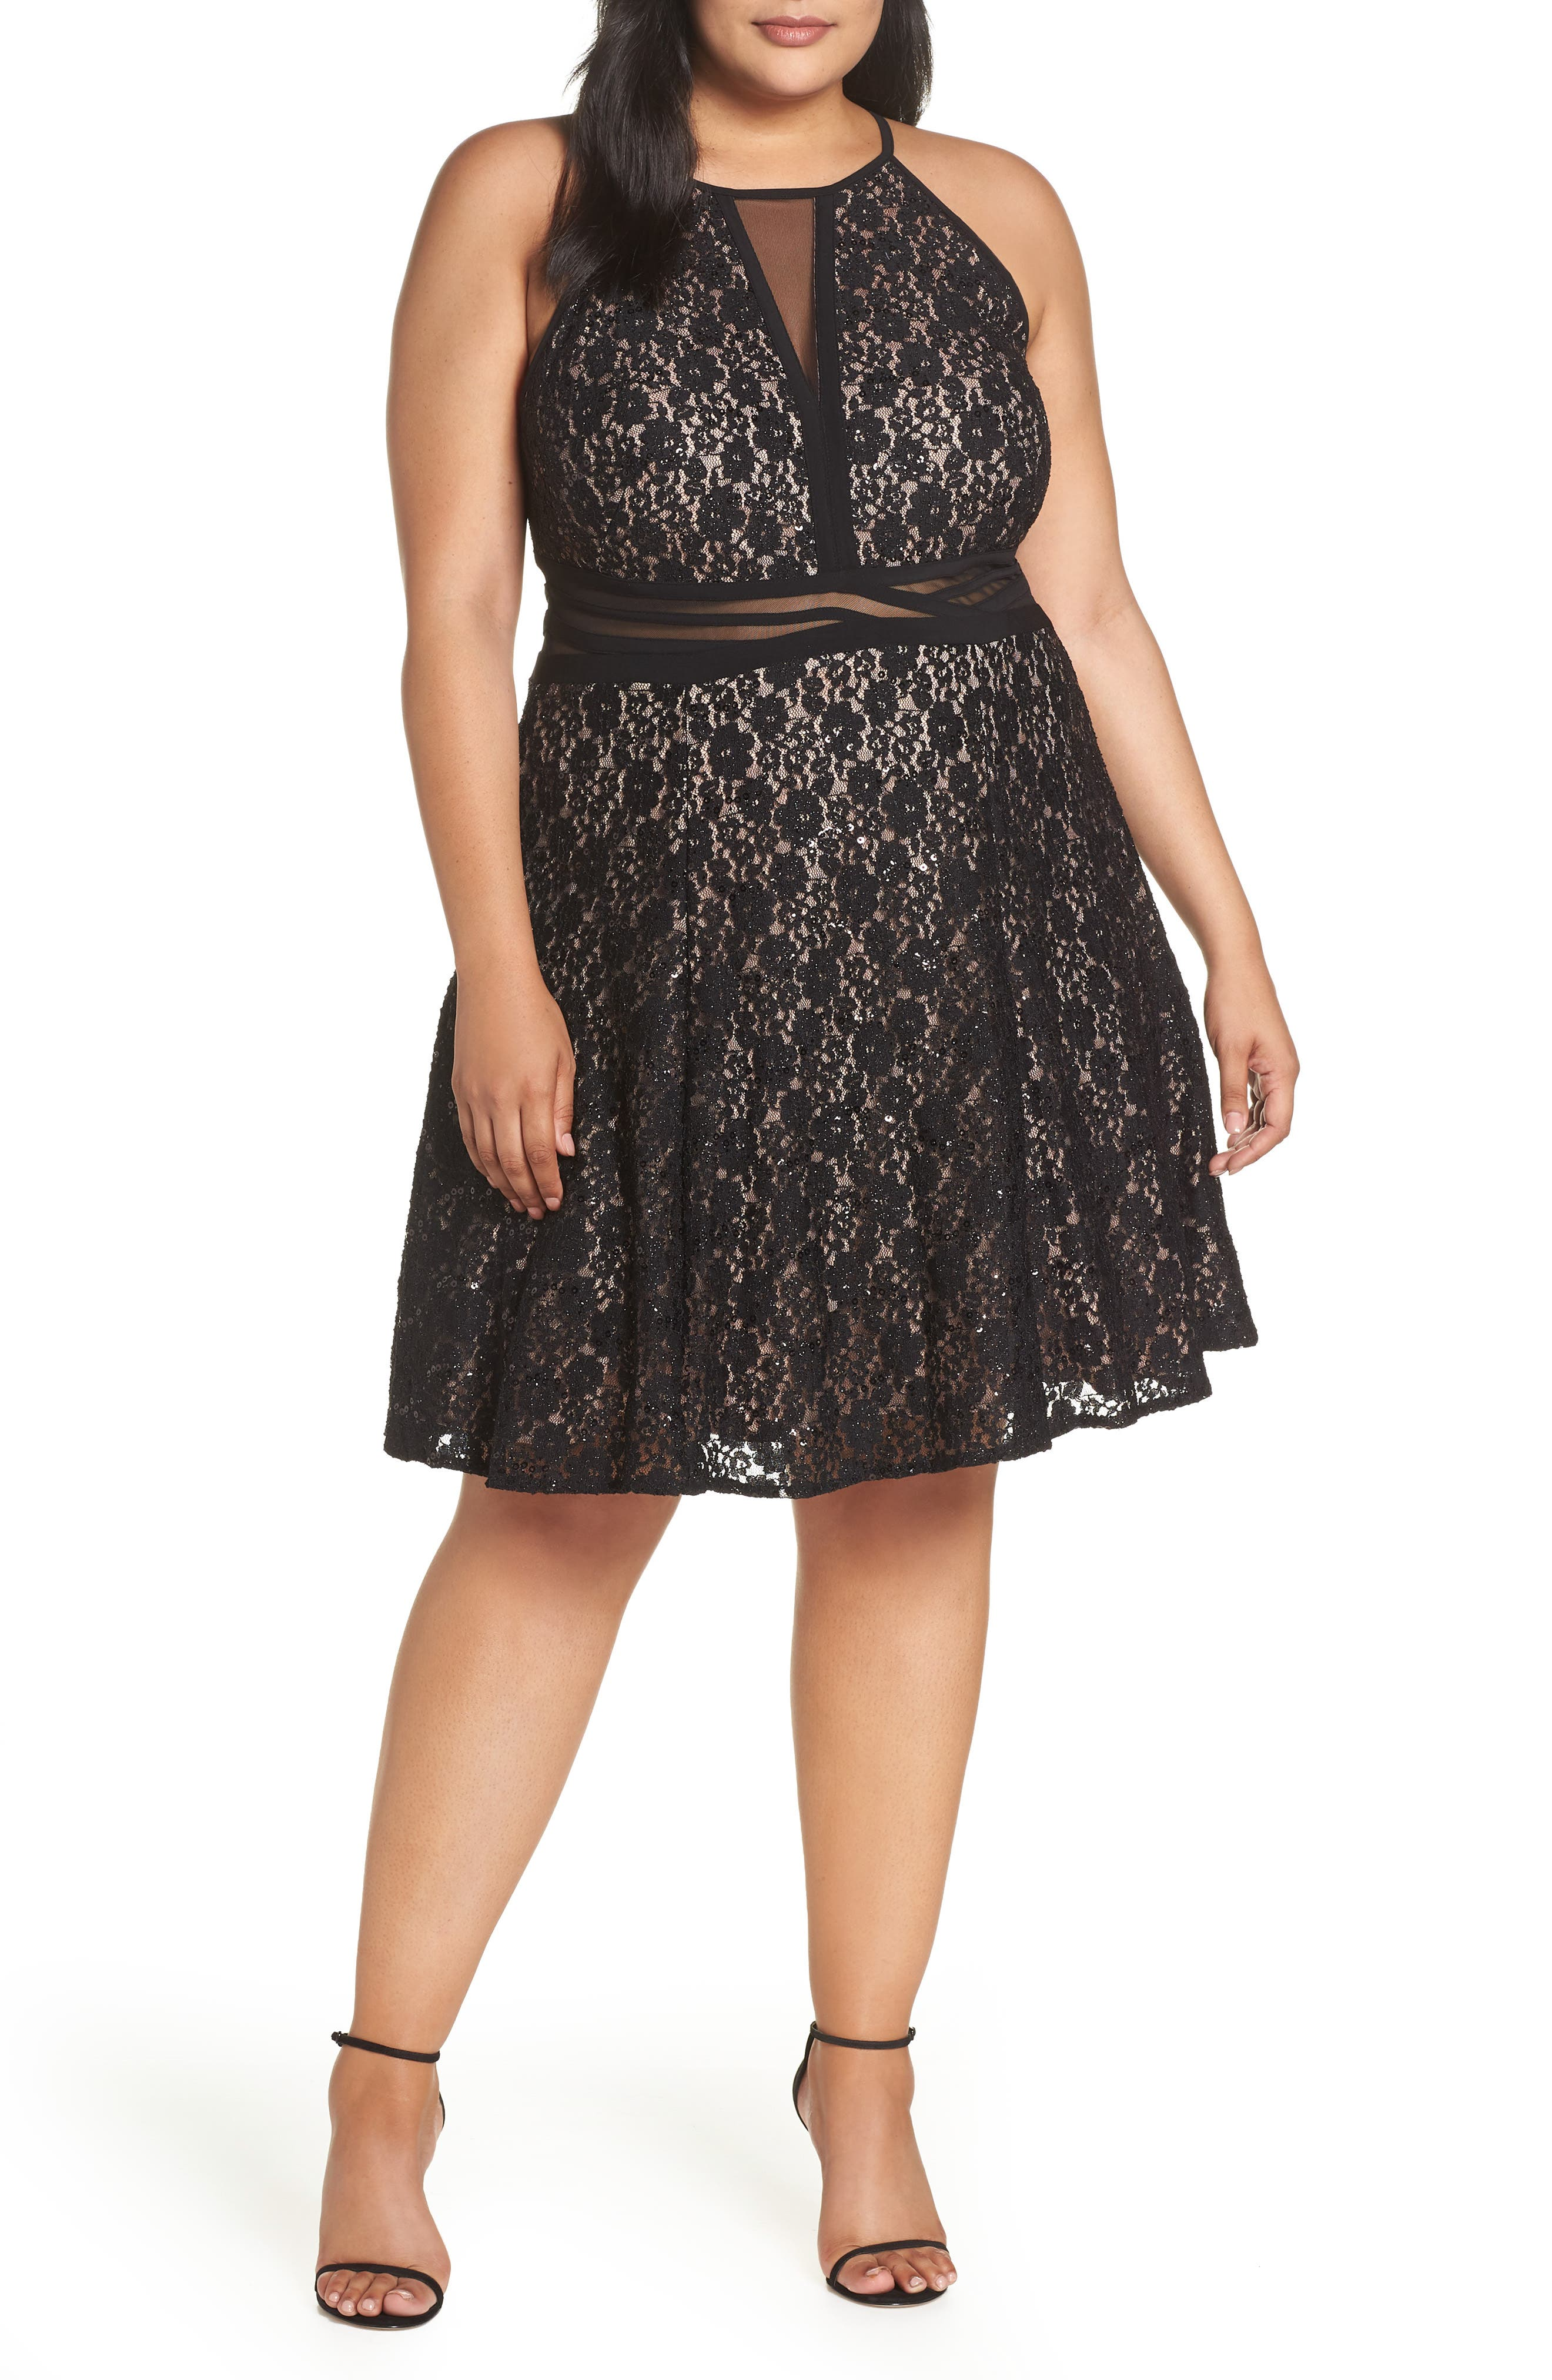 MORGAN & CO. Sheer Inset Lace Fit & Flare Dress, Main, color, BLACK/ NUDE